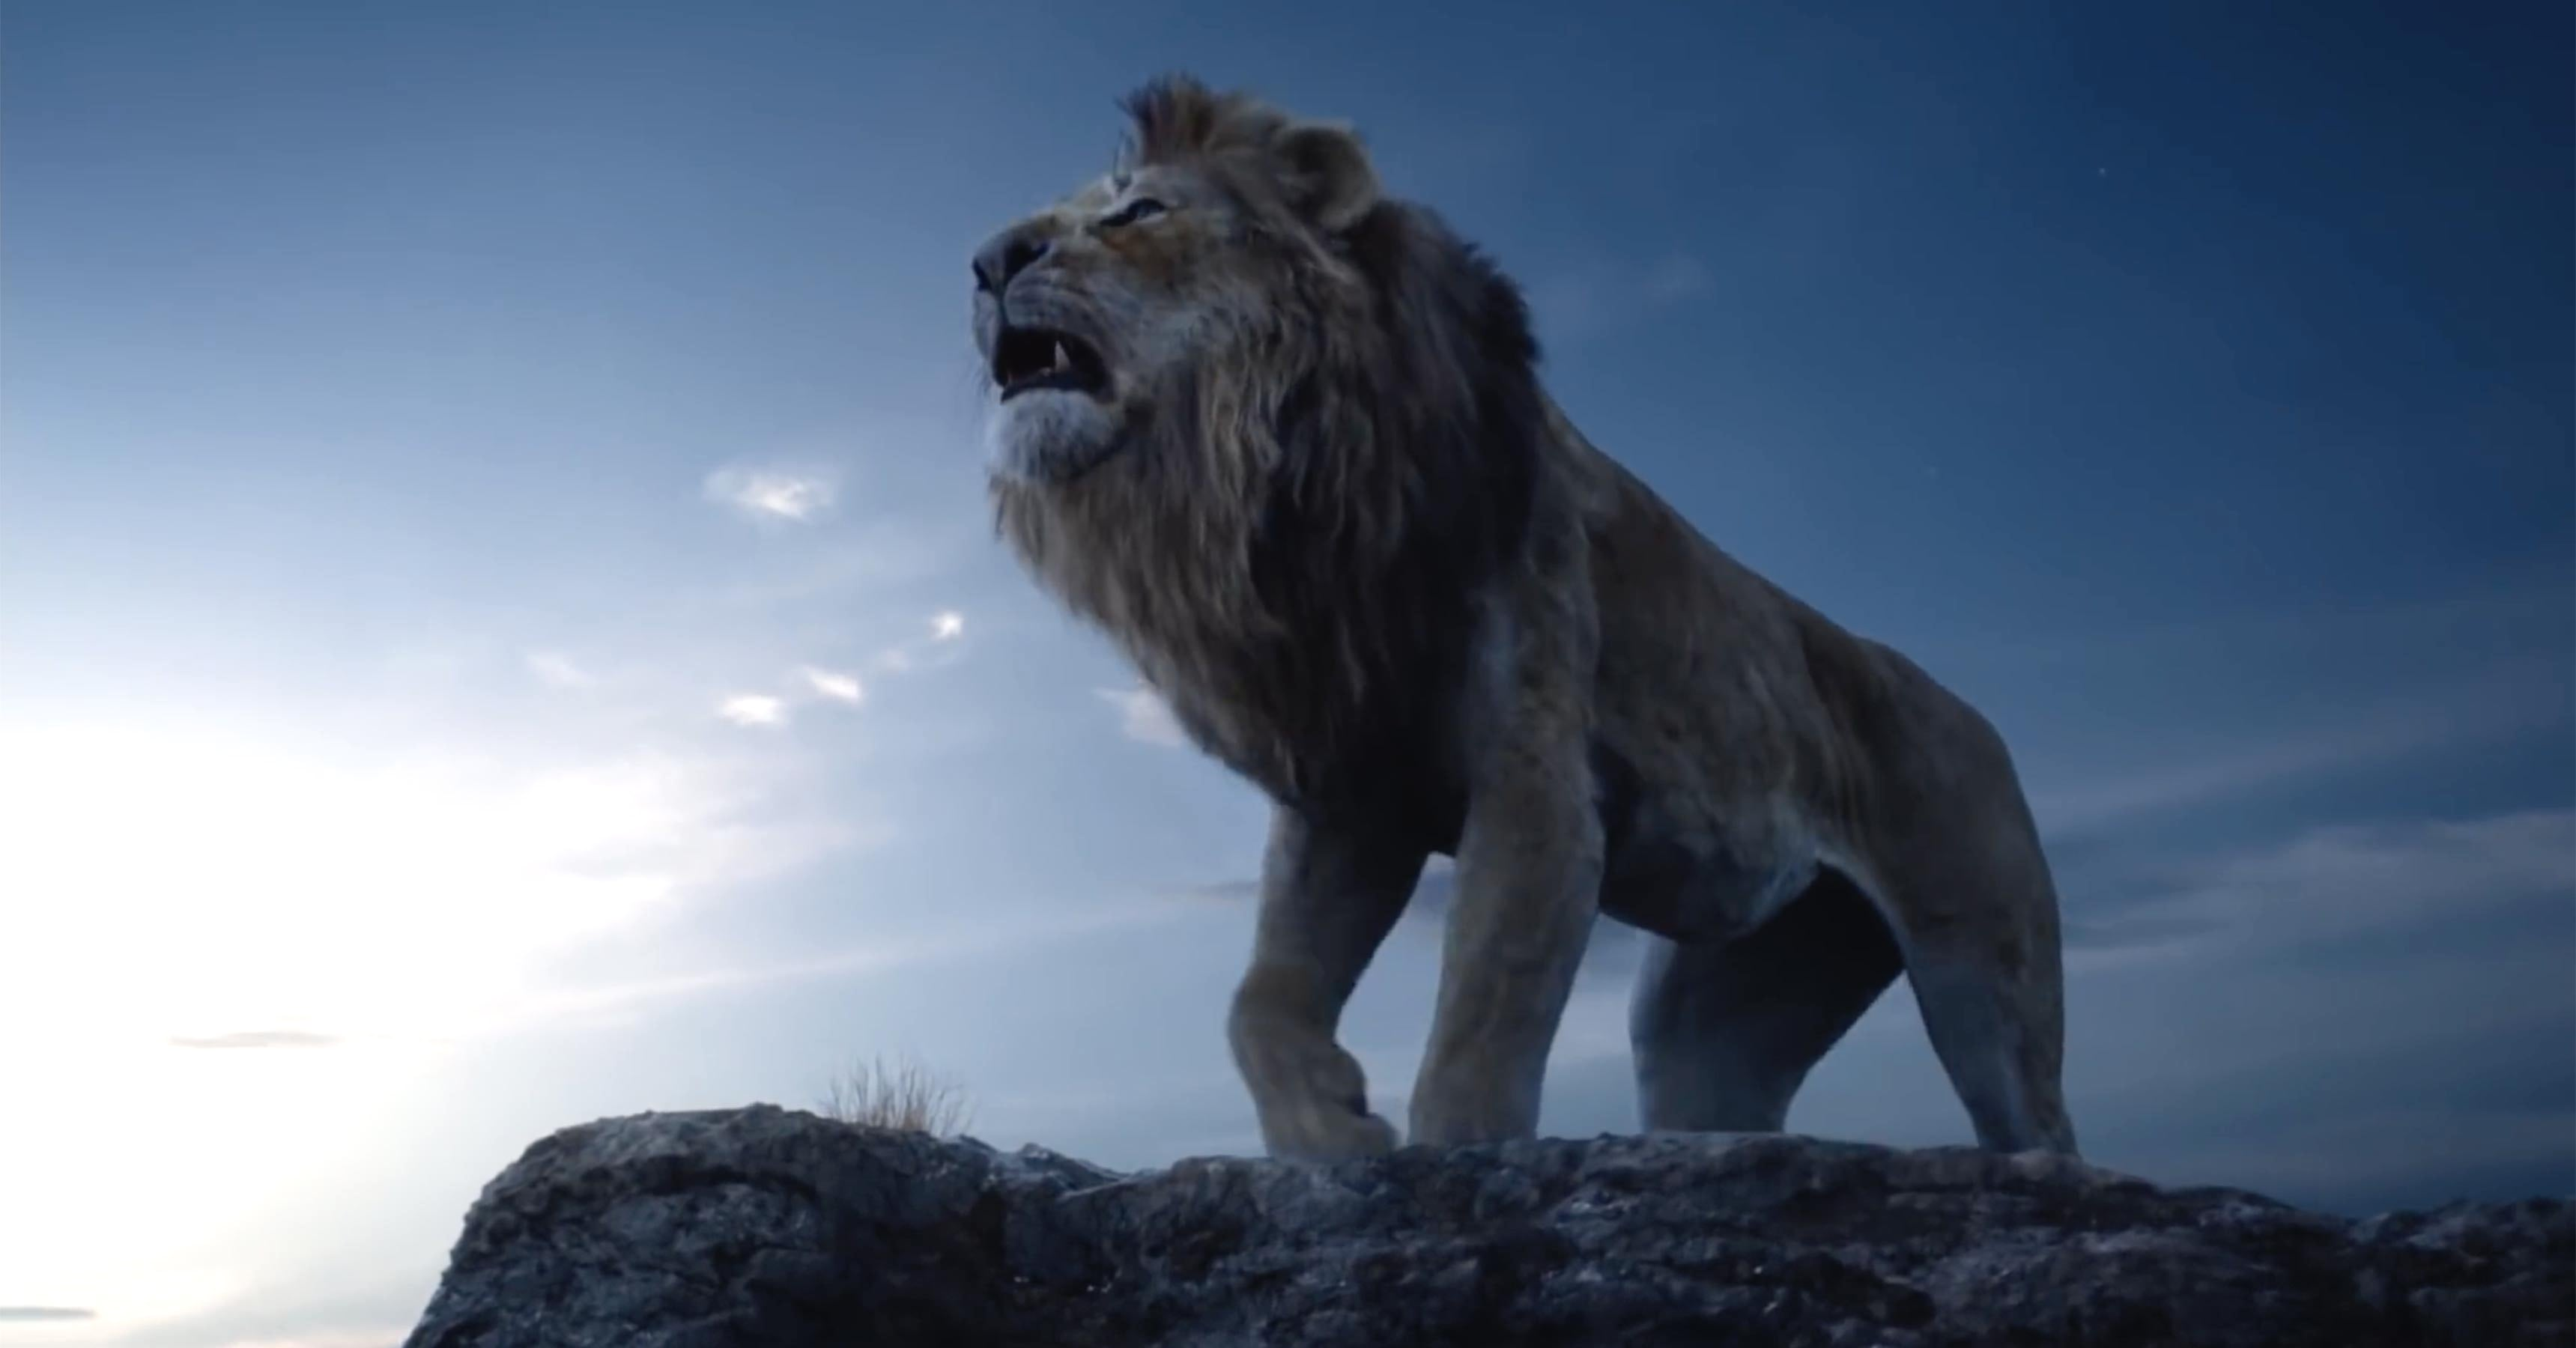 Lion King Hd Wallpapers 2019